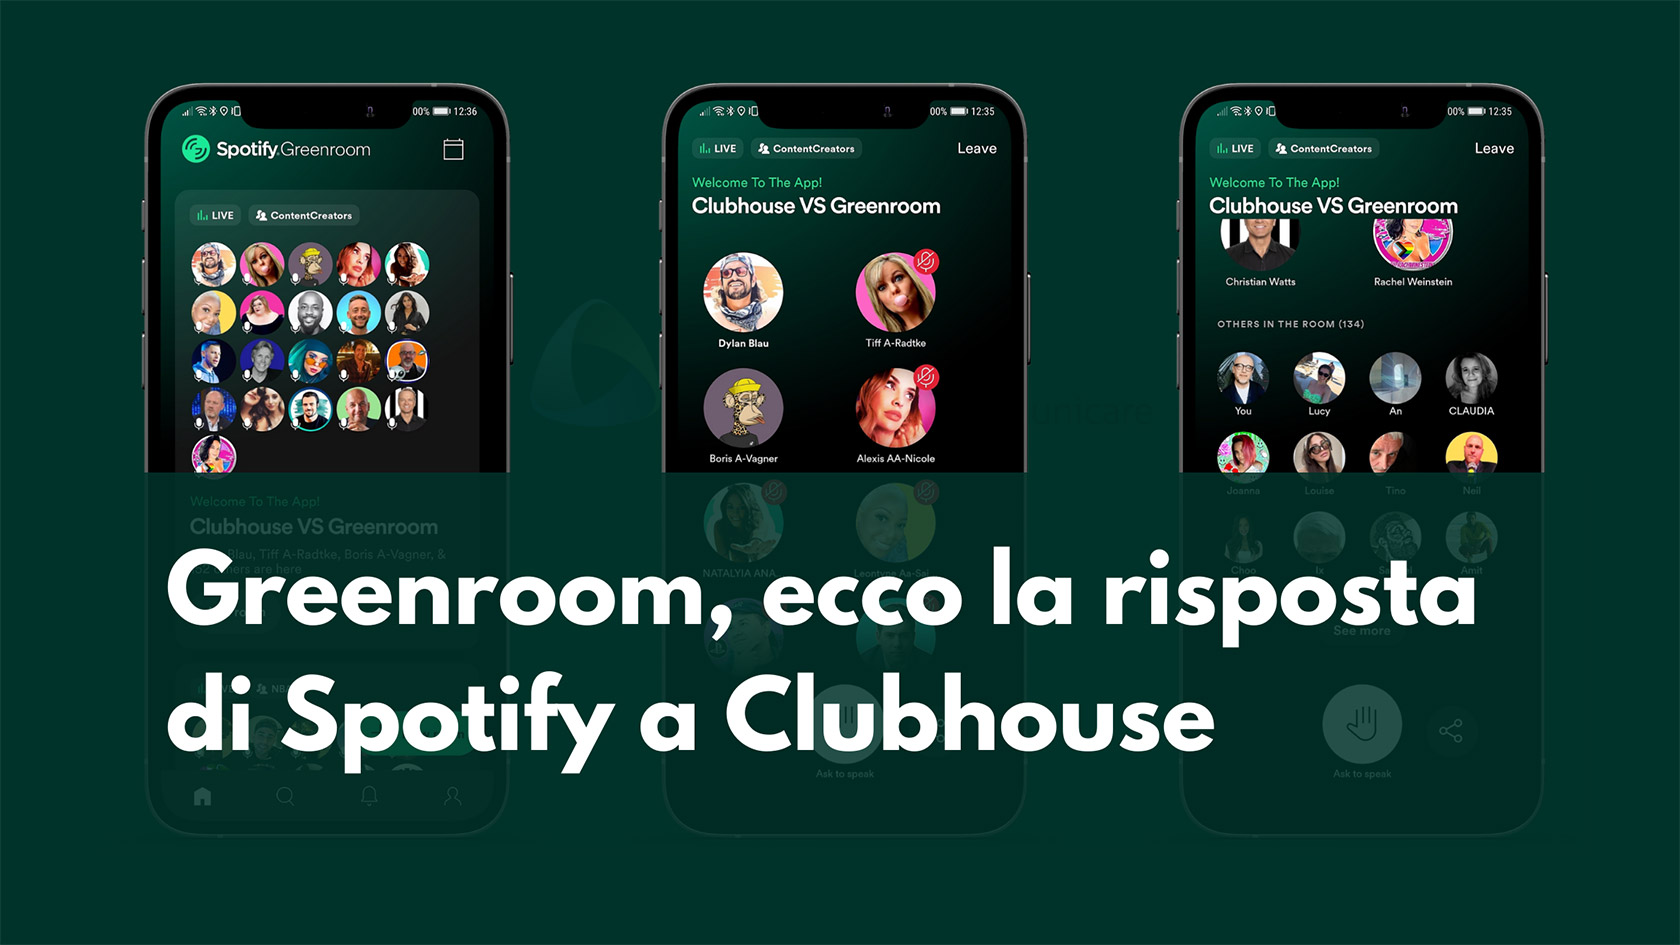 Greenroom risposta Spotify Clubhouse franzrusso.it